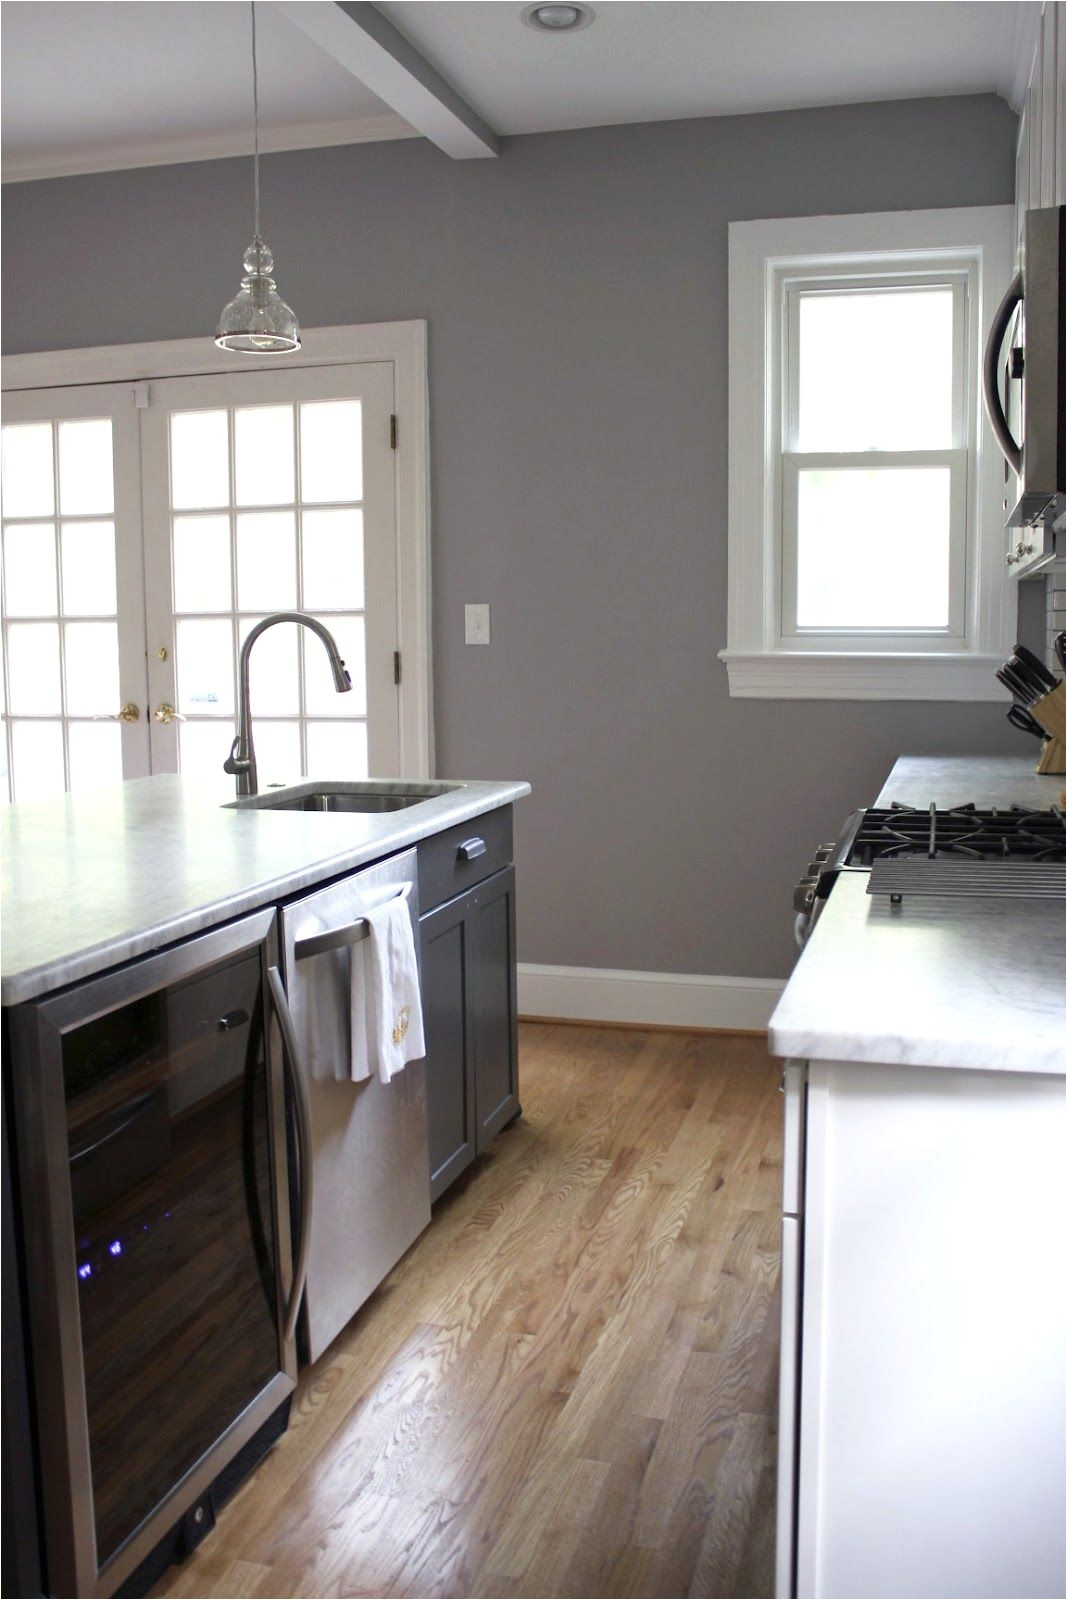 behr porpoise i love the gray walls with the wood floors i have this in my home